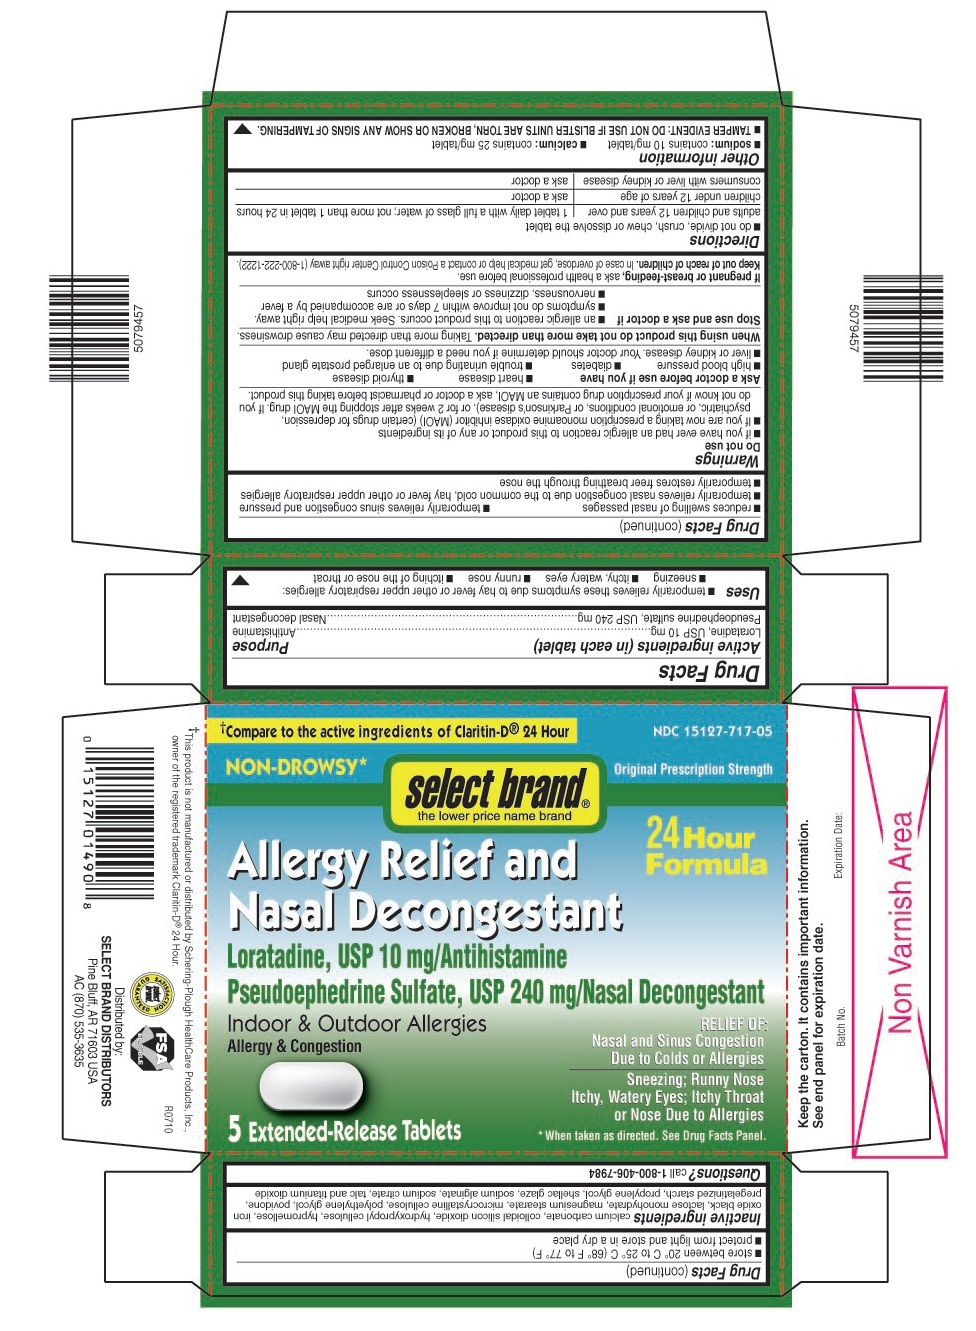 This is the 5 count blister carton label for Select Brand Loratadine D tablets.